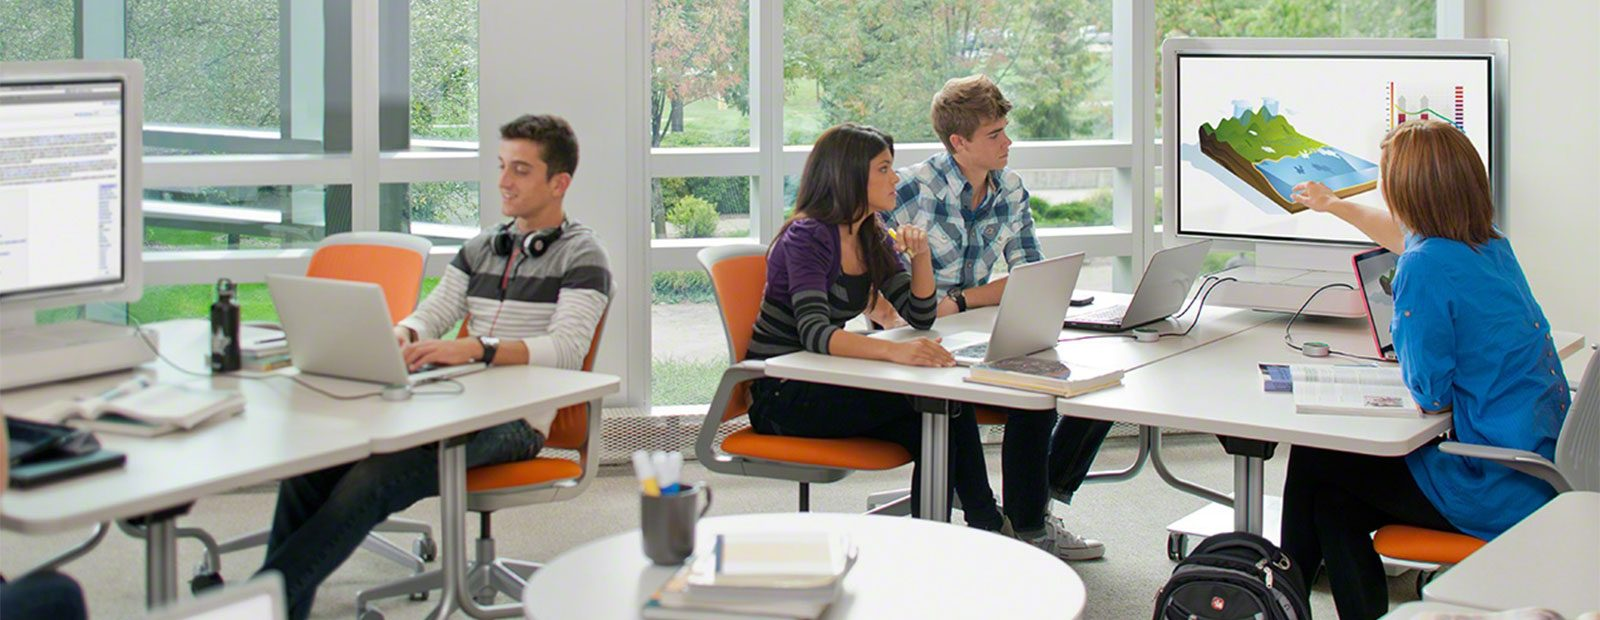 Education Spaces Workspace gallery image